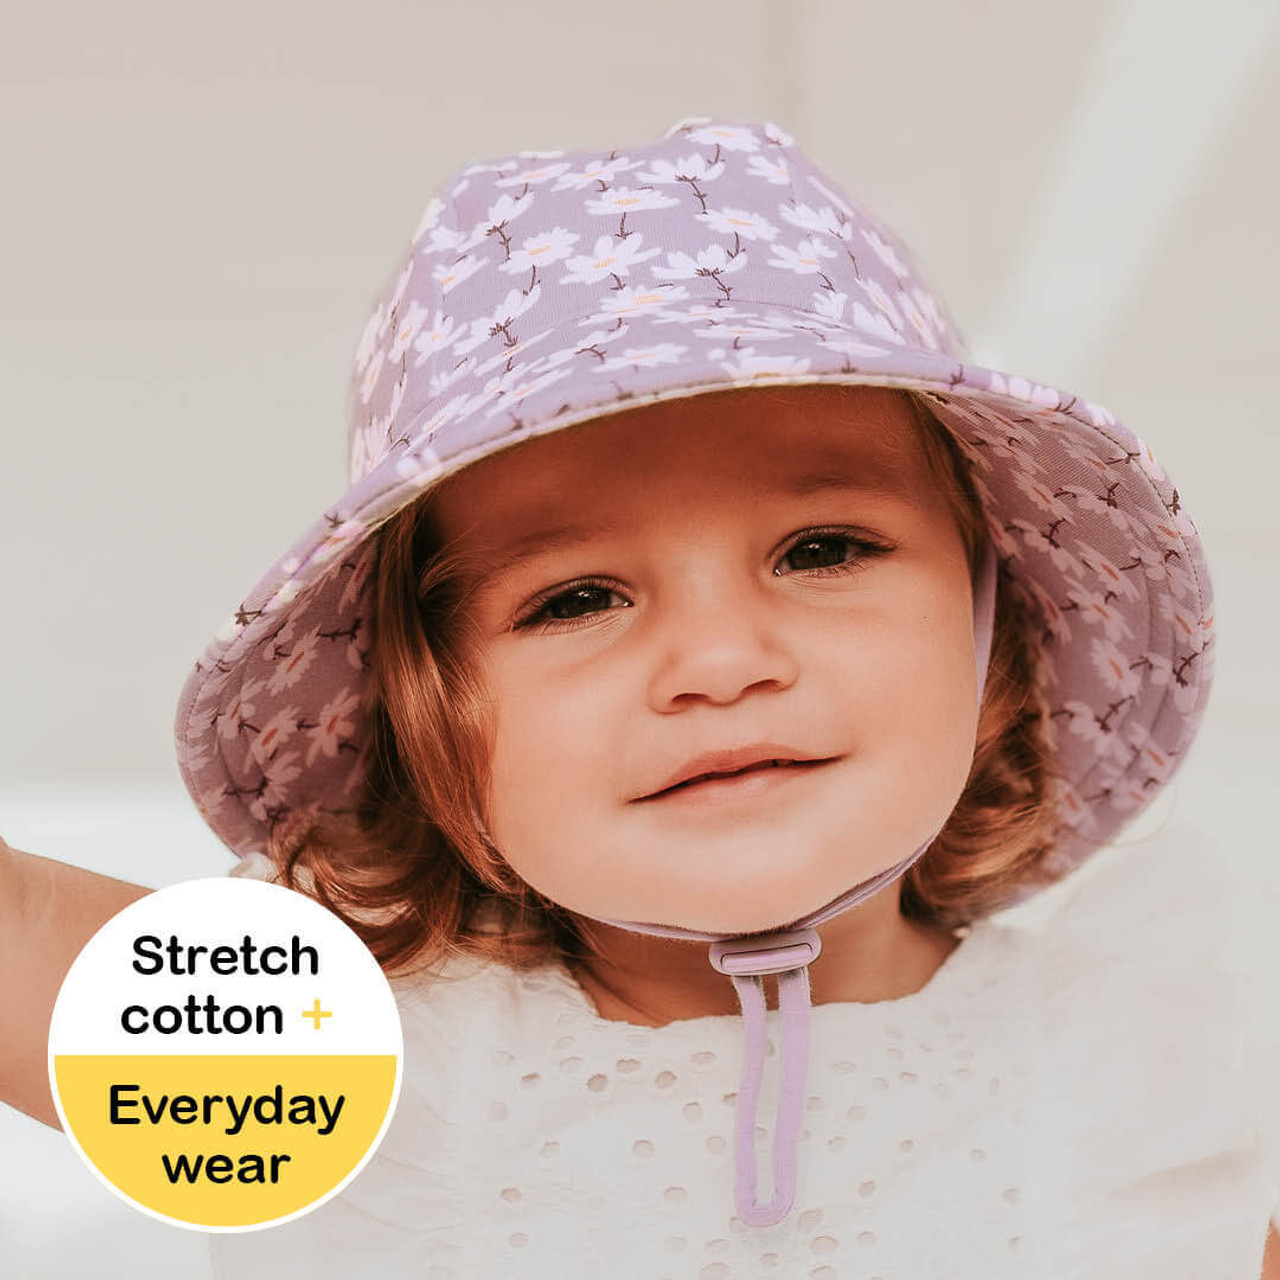 Bedhead Toddler Bucket Hat - Cosmos at Baby Barn Discounts A bucket hat with a dainty smattering of cosmo flowers on a lilac background is bound to suit any wardrobe with shades of white, denim, pink and purple.